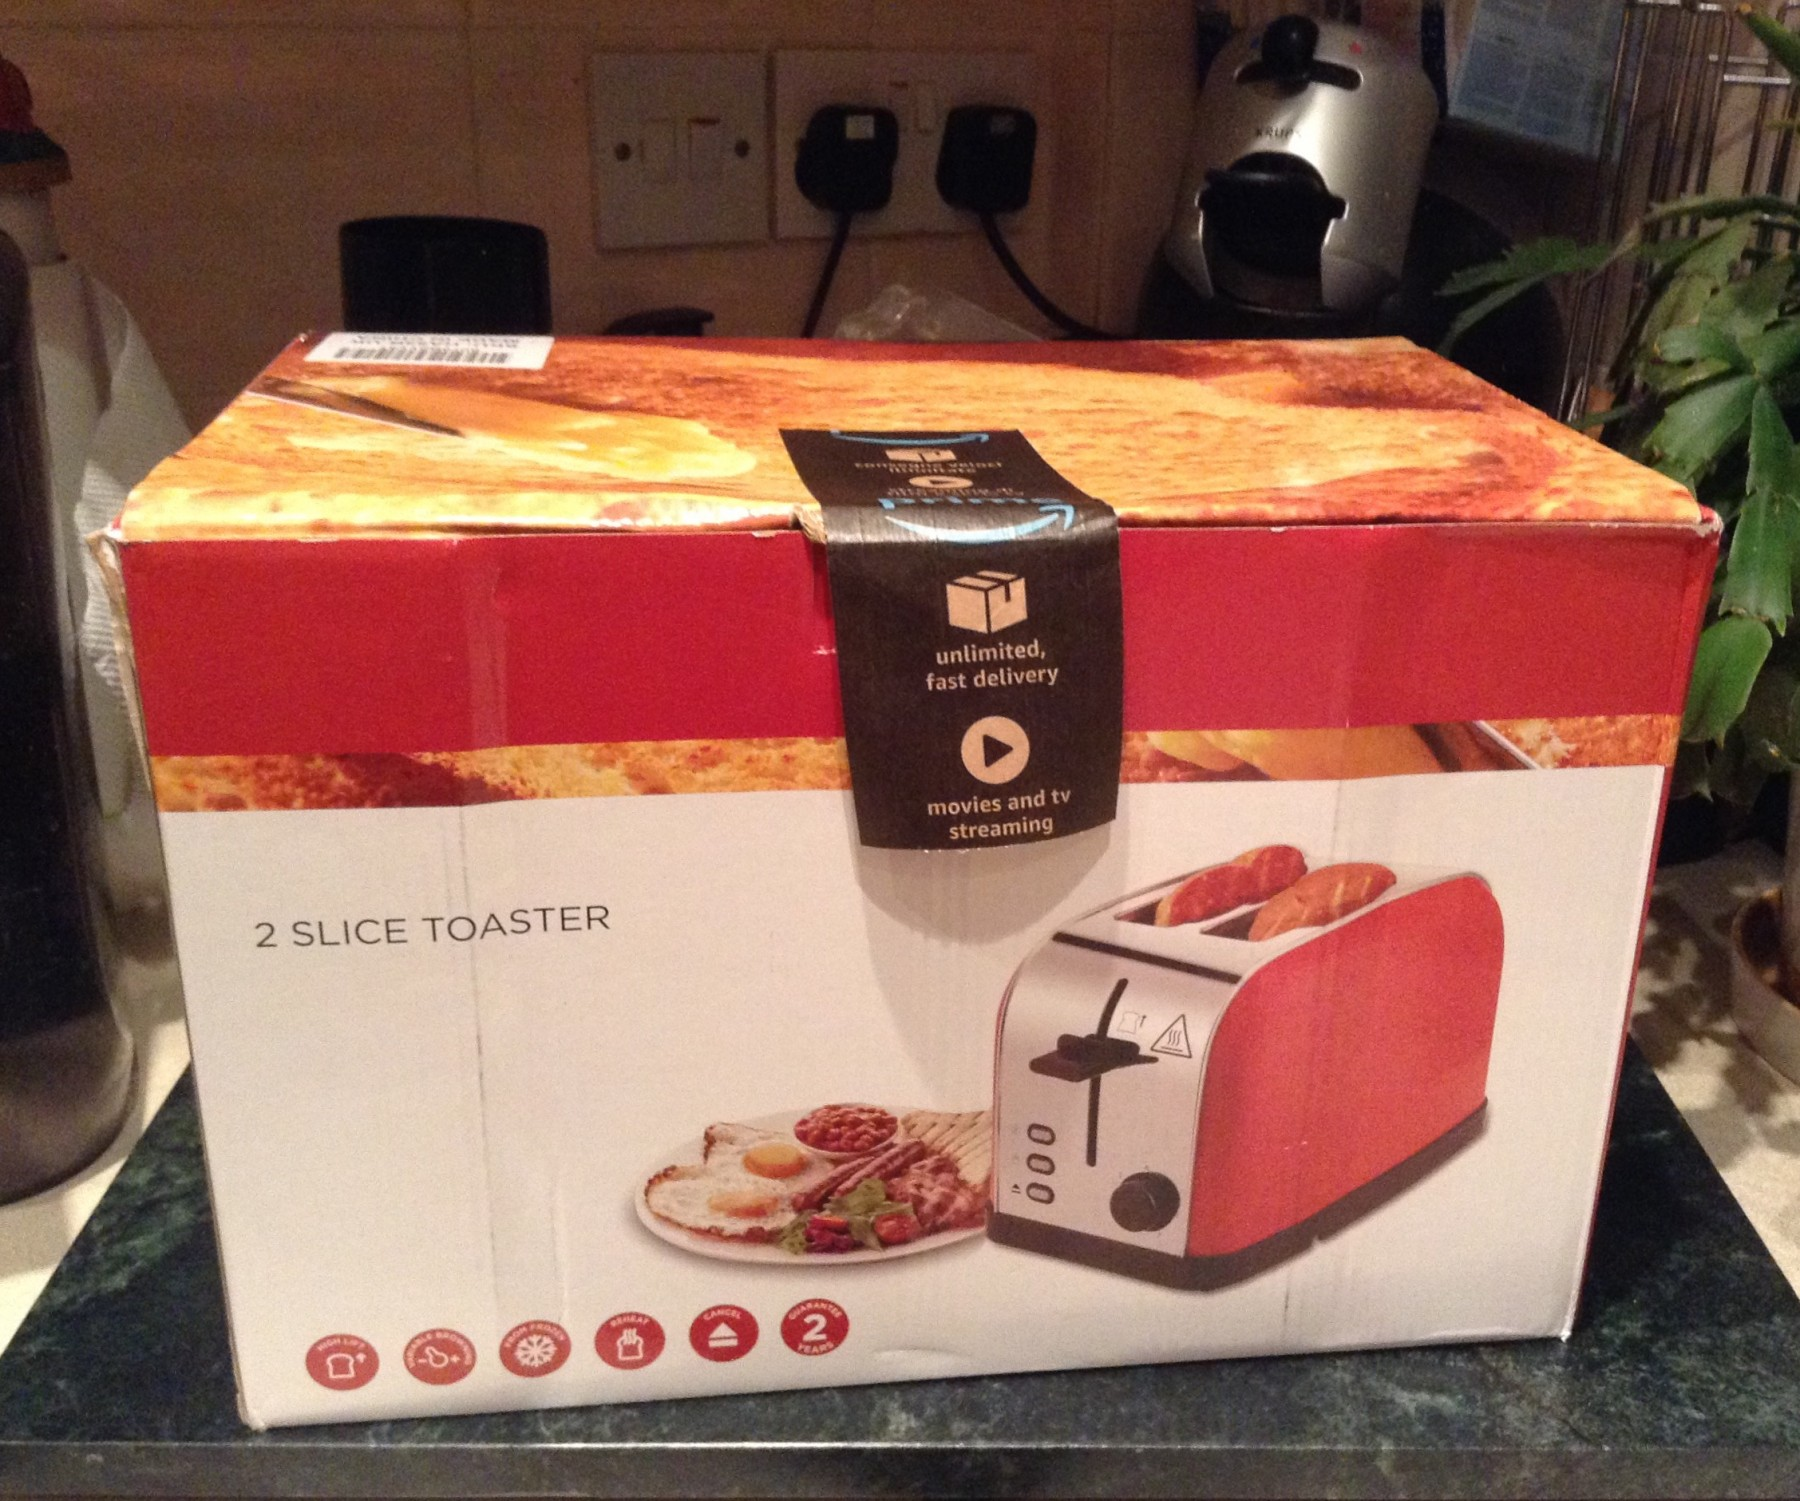 My New Toaster – Thumbs Up